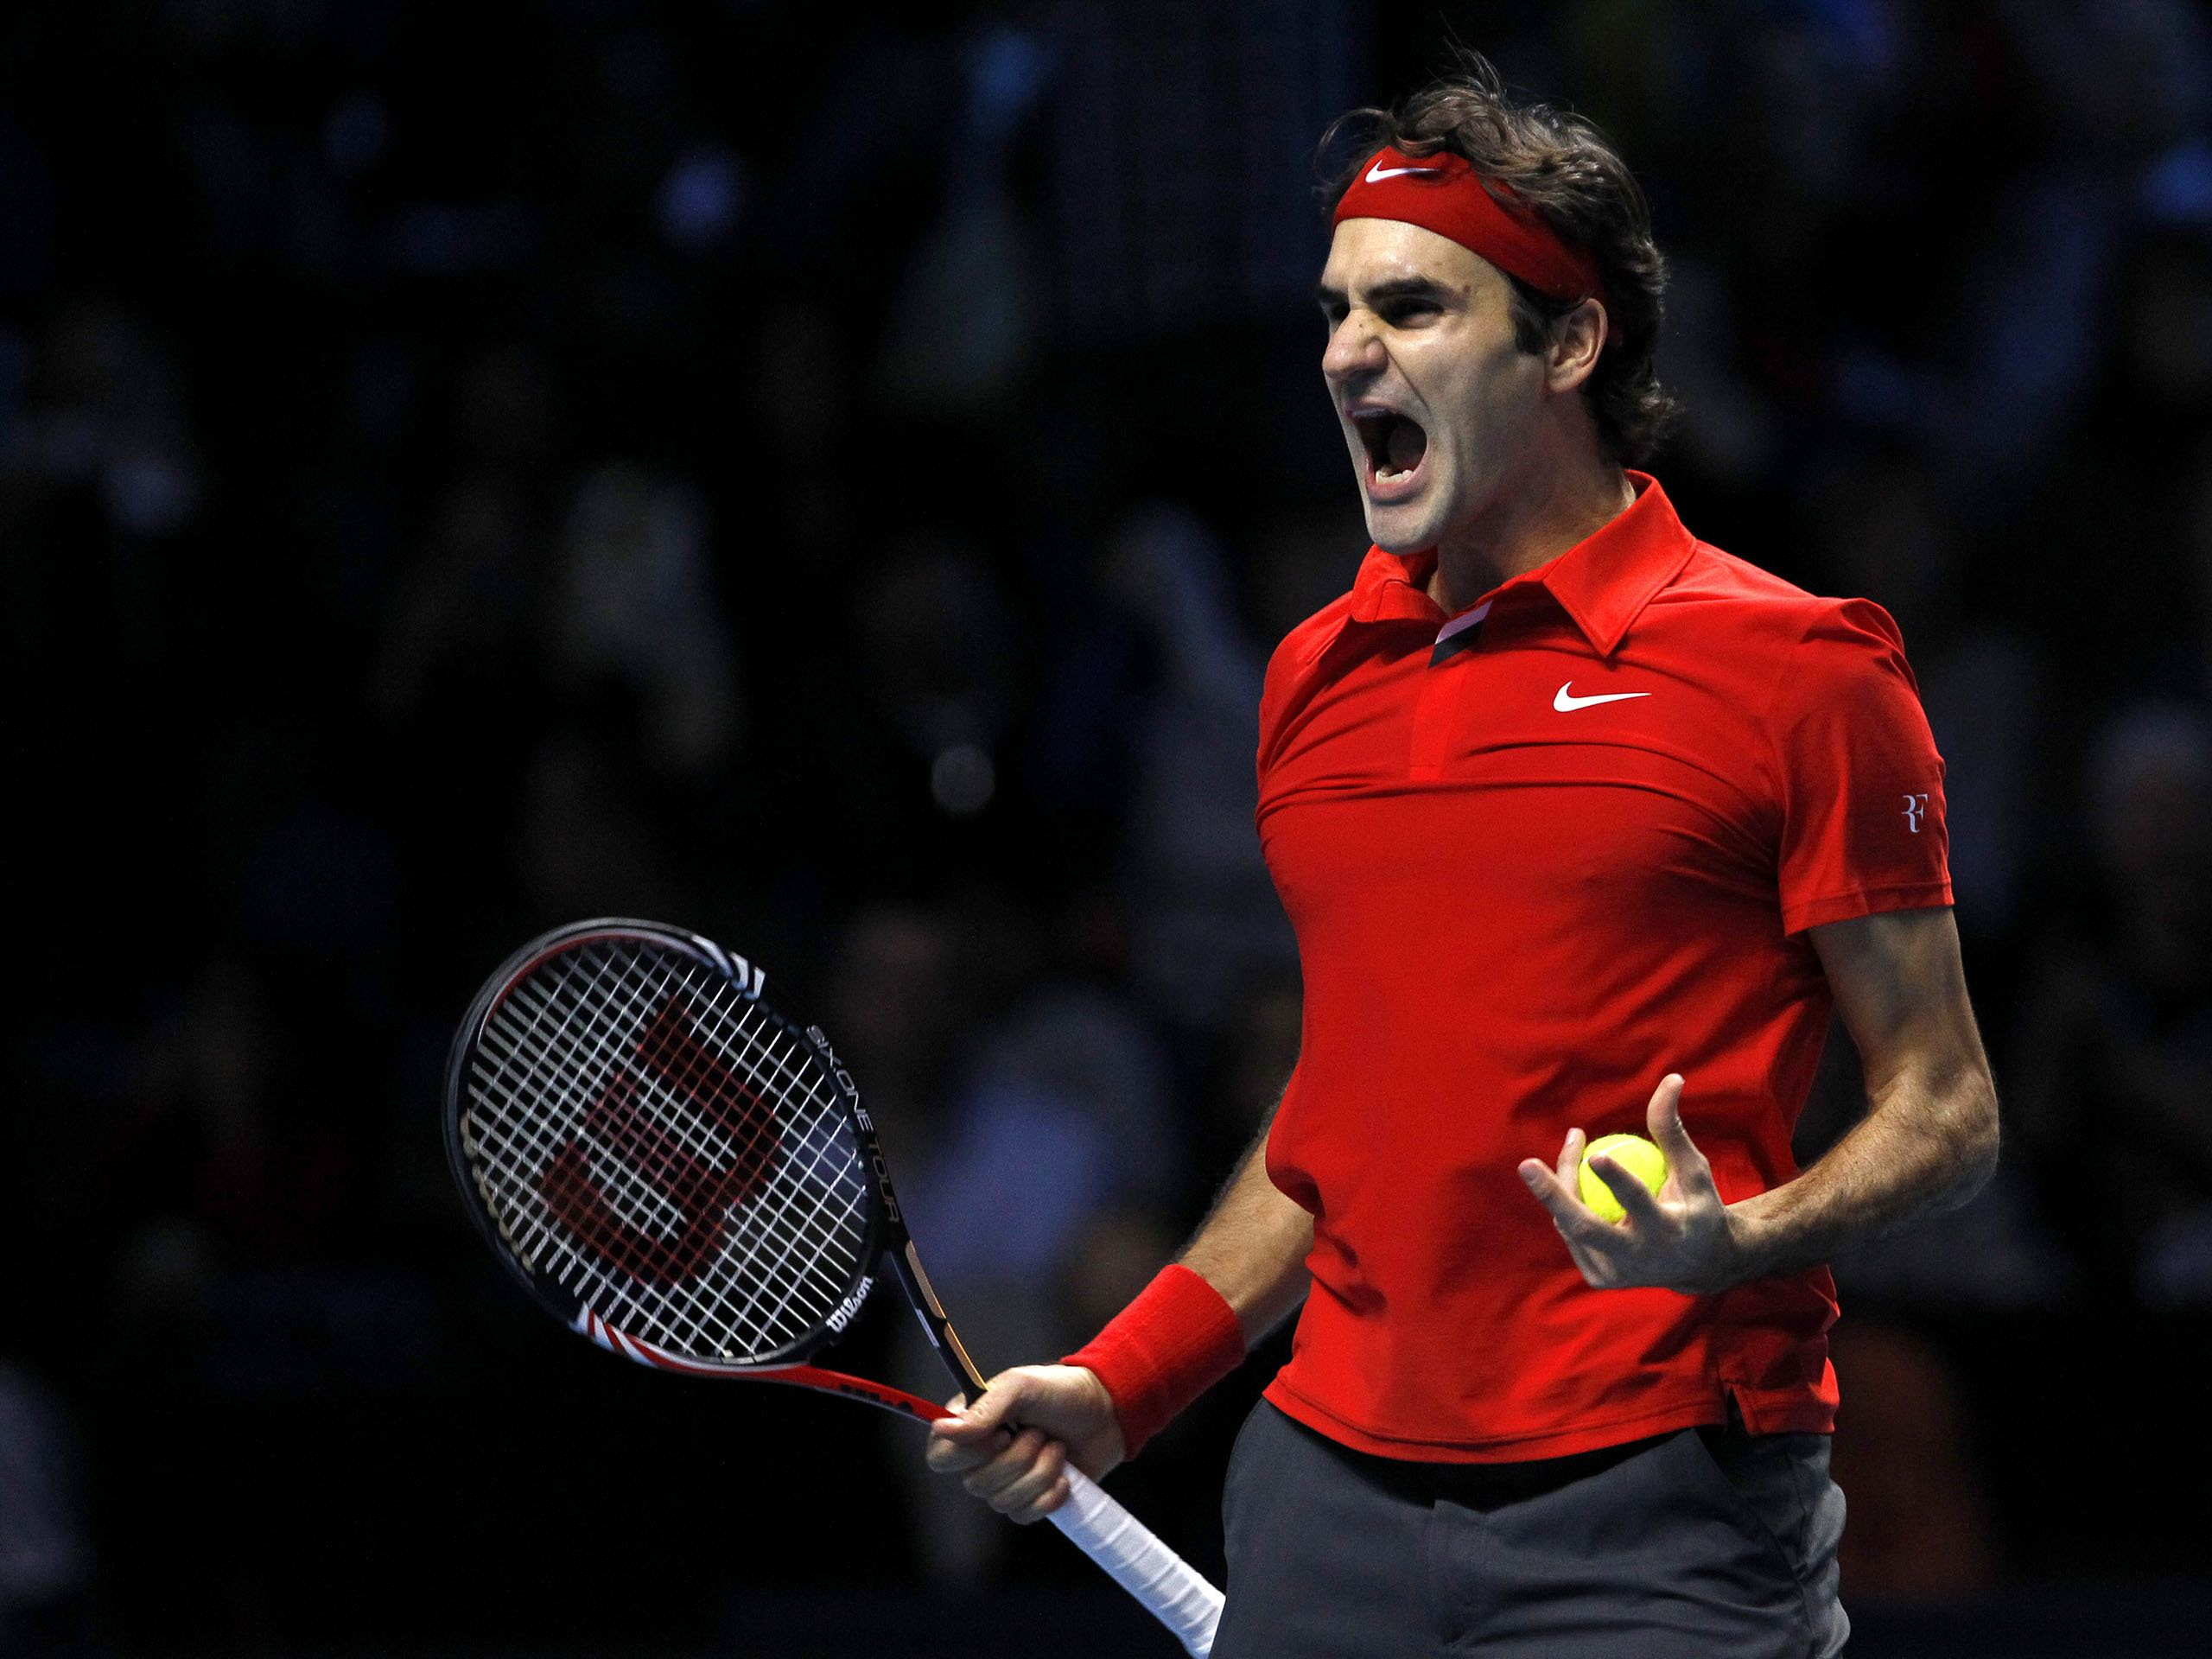 Roger Federer HD Wallpapers 7wallpapersnet 2560x1920